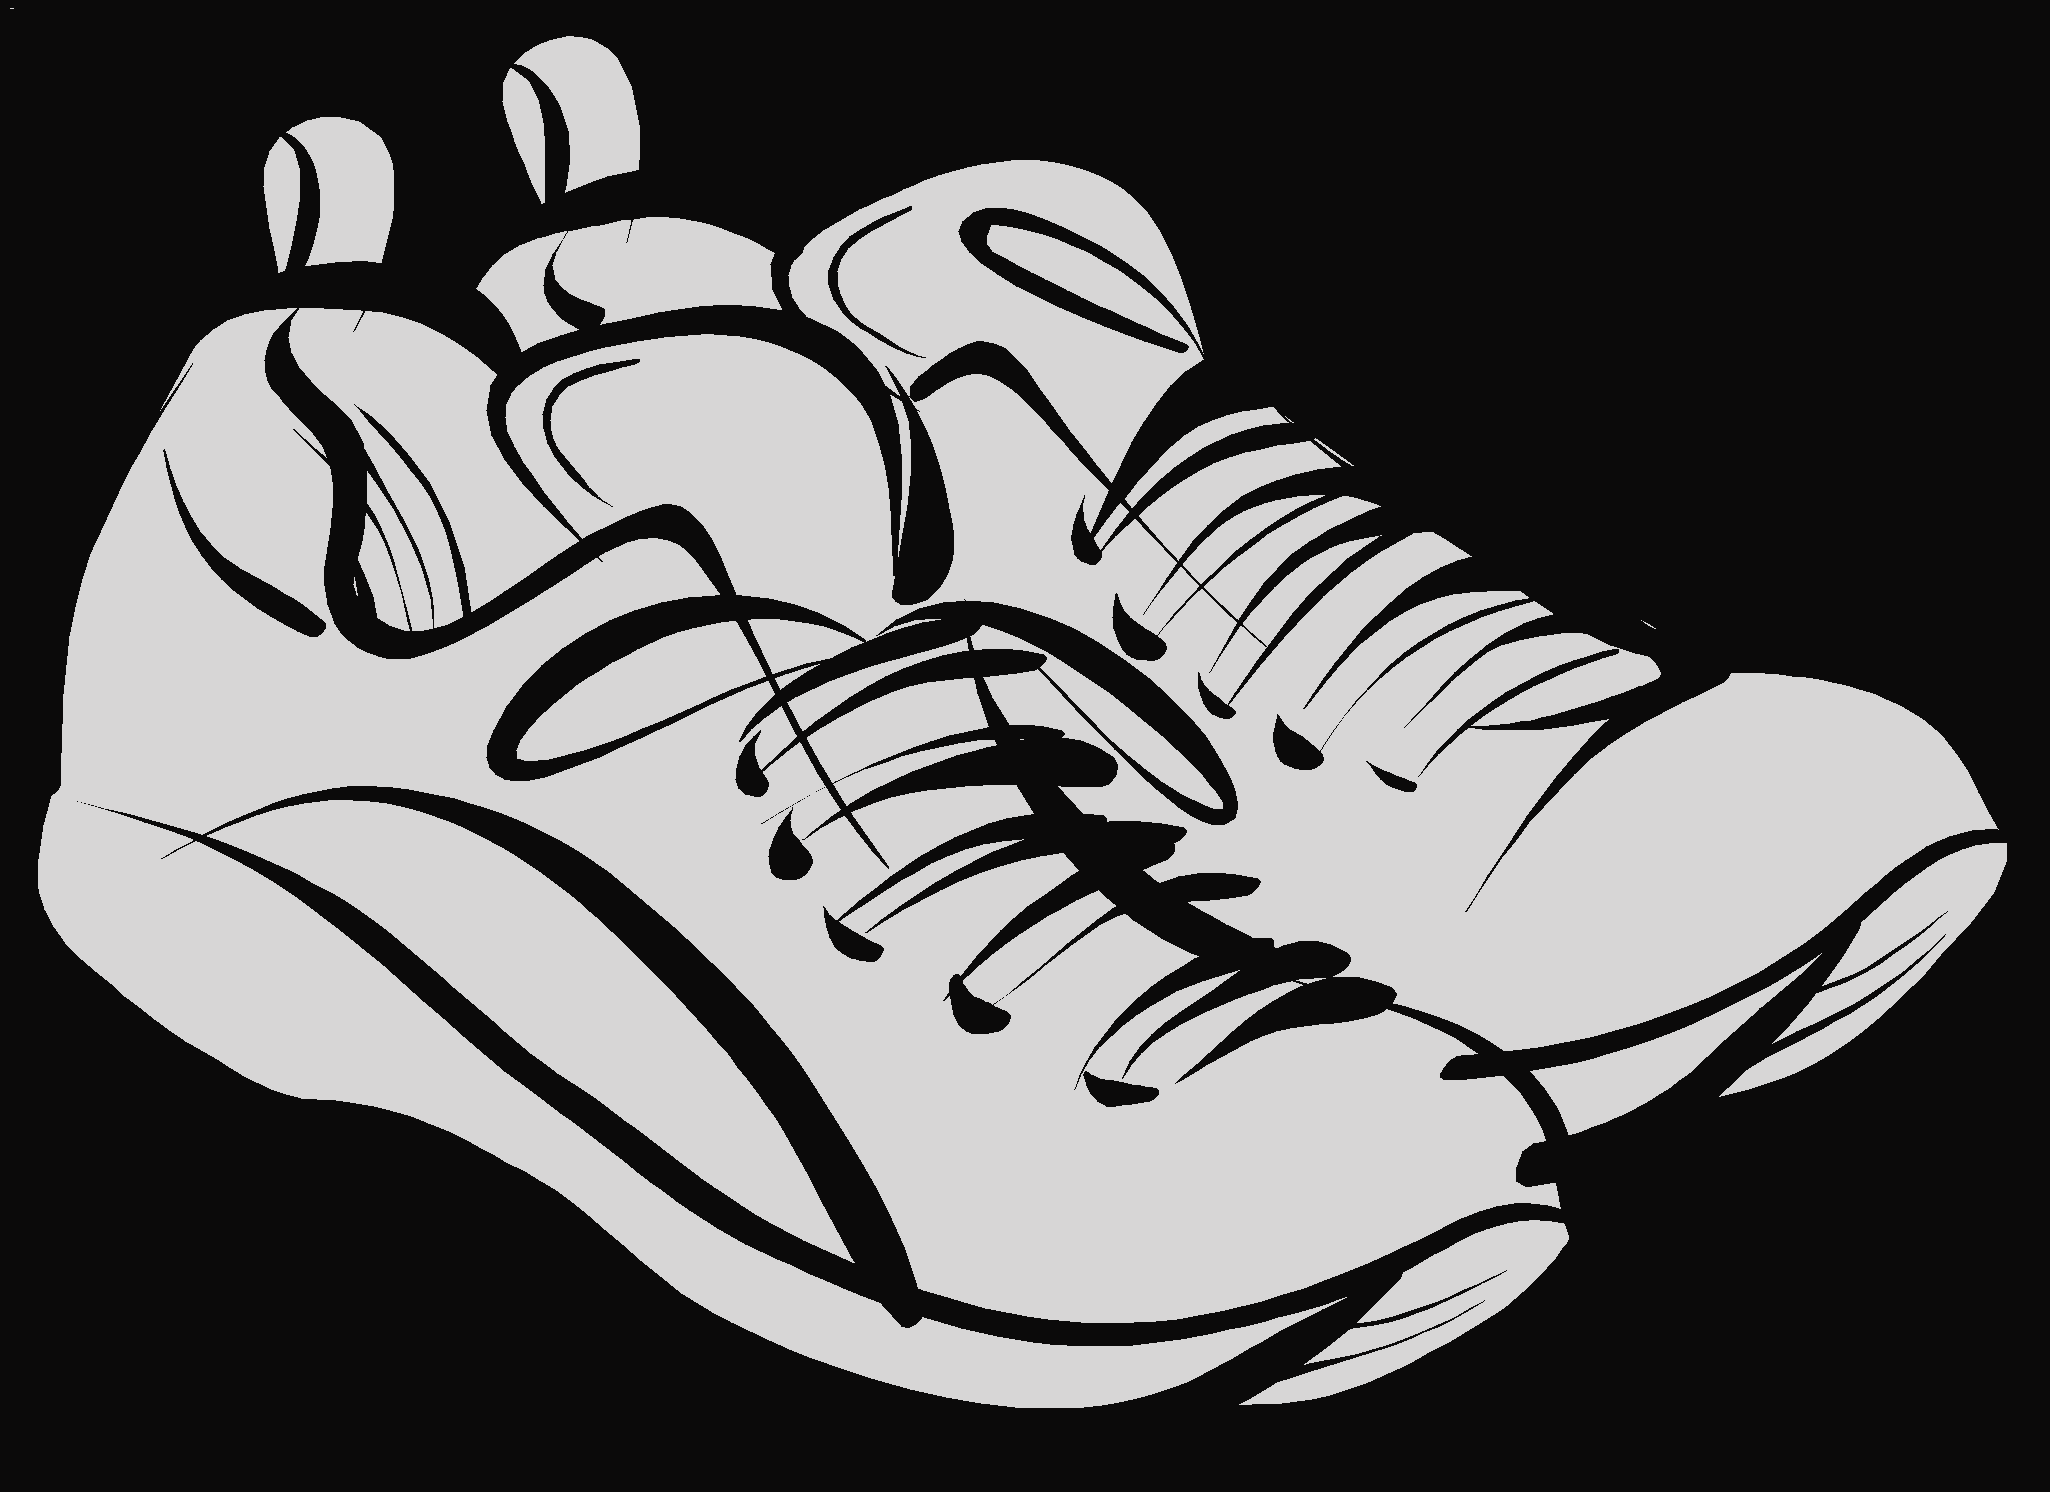 Track clipart vector. Shoe free vqruux image